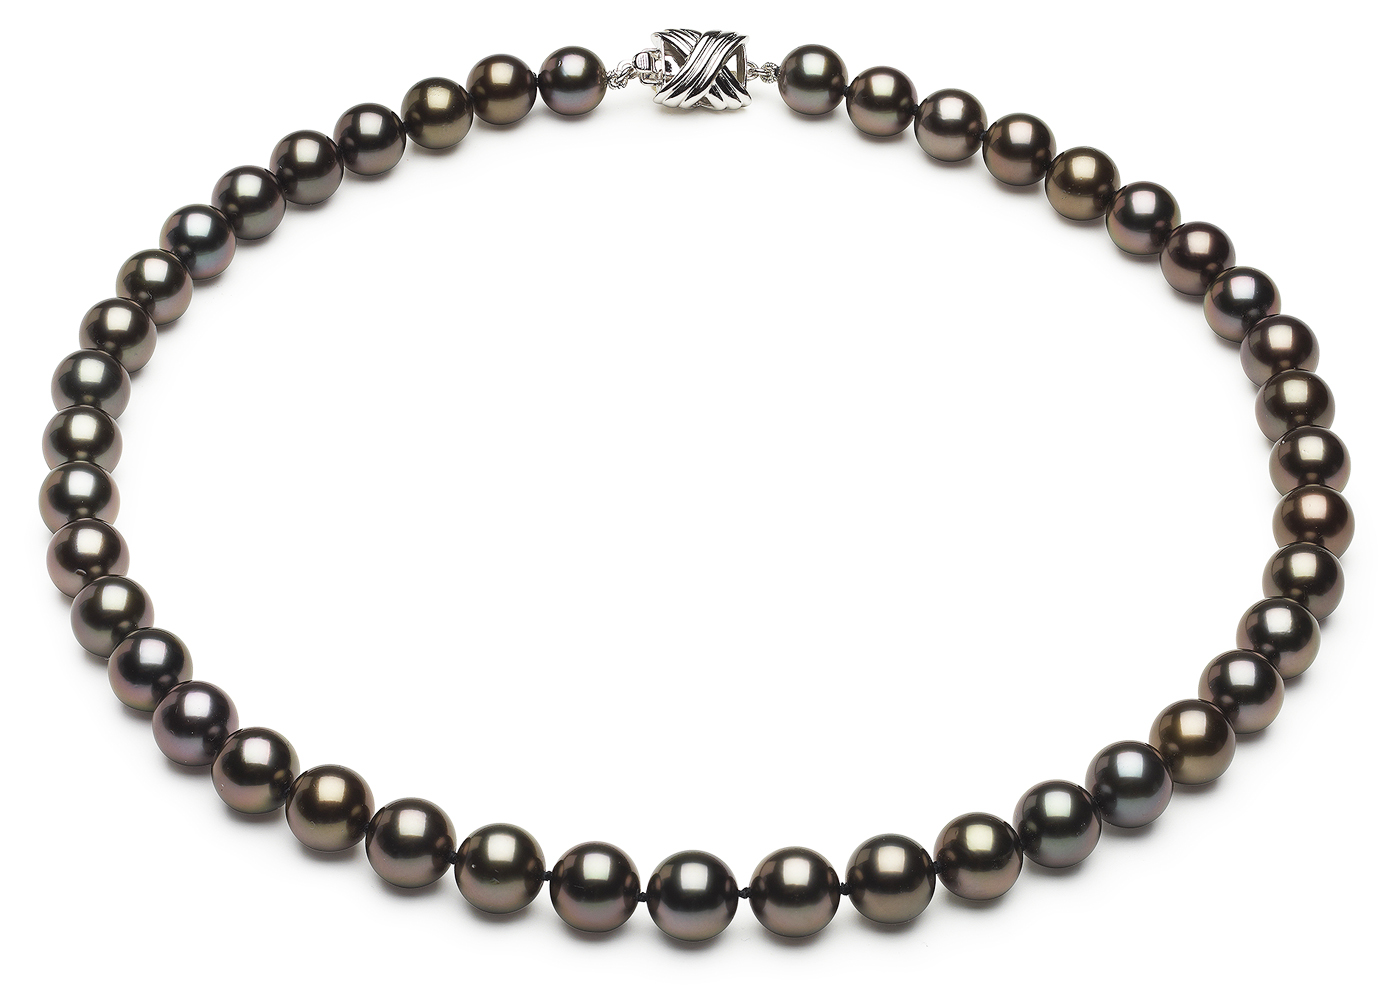 Tahitian Pearl Necklace Serial Number   8mm8-9mm-tahitian-south-sea-pearl-necklace-true-aaa-16inch-s6-xb02135-b59